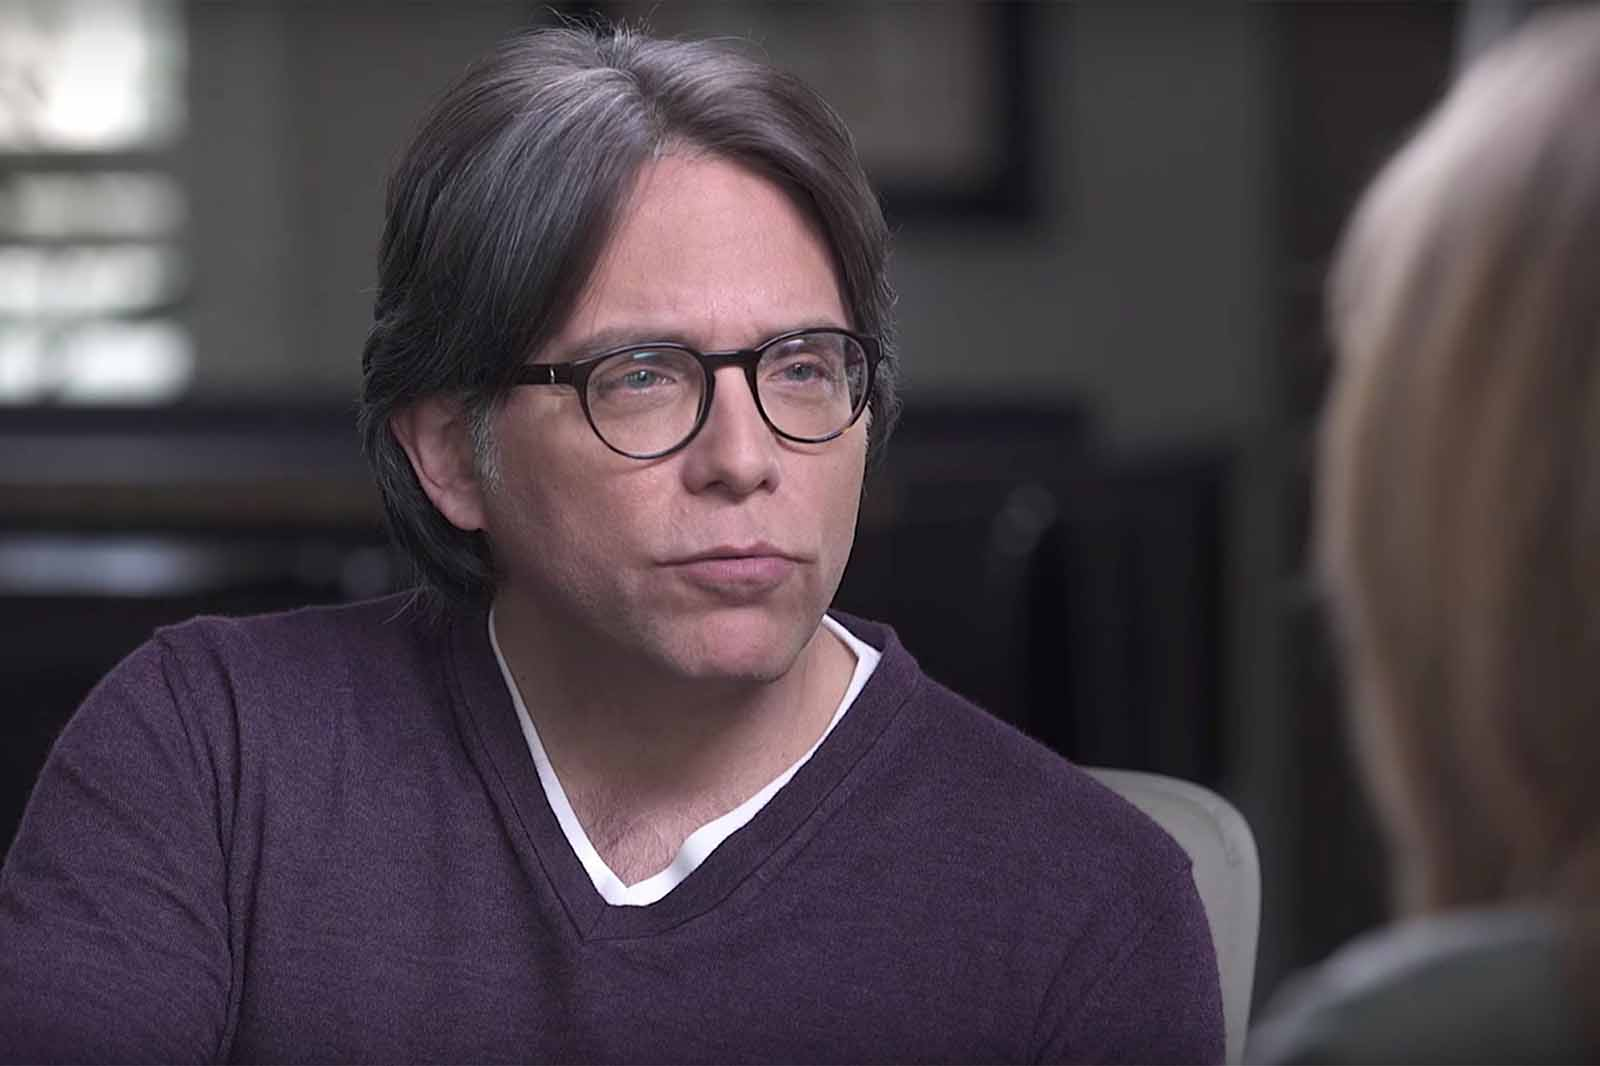 As more horror stories come out about the NXIVM cult, the list of celebrities with tie to the company gets longer. How did they get so many big names?